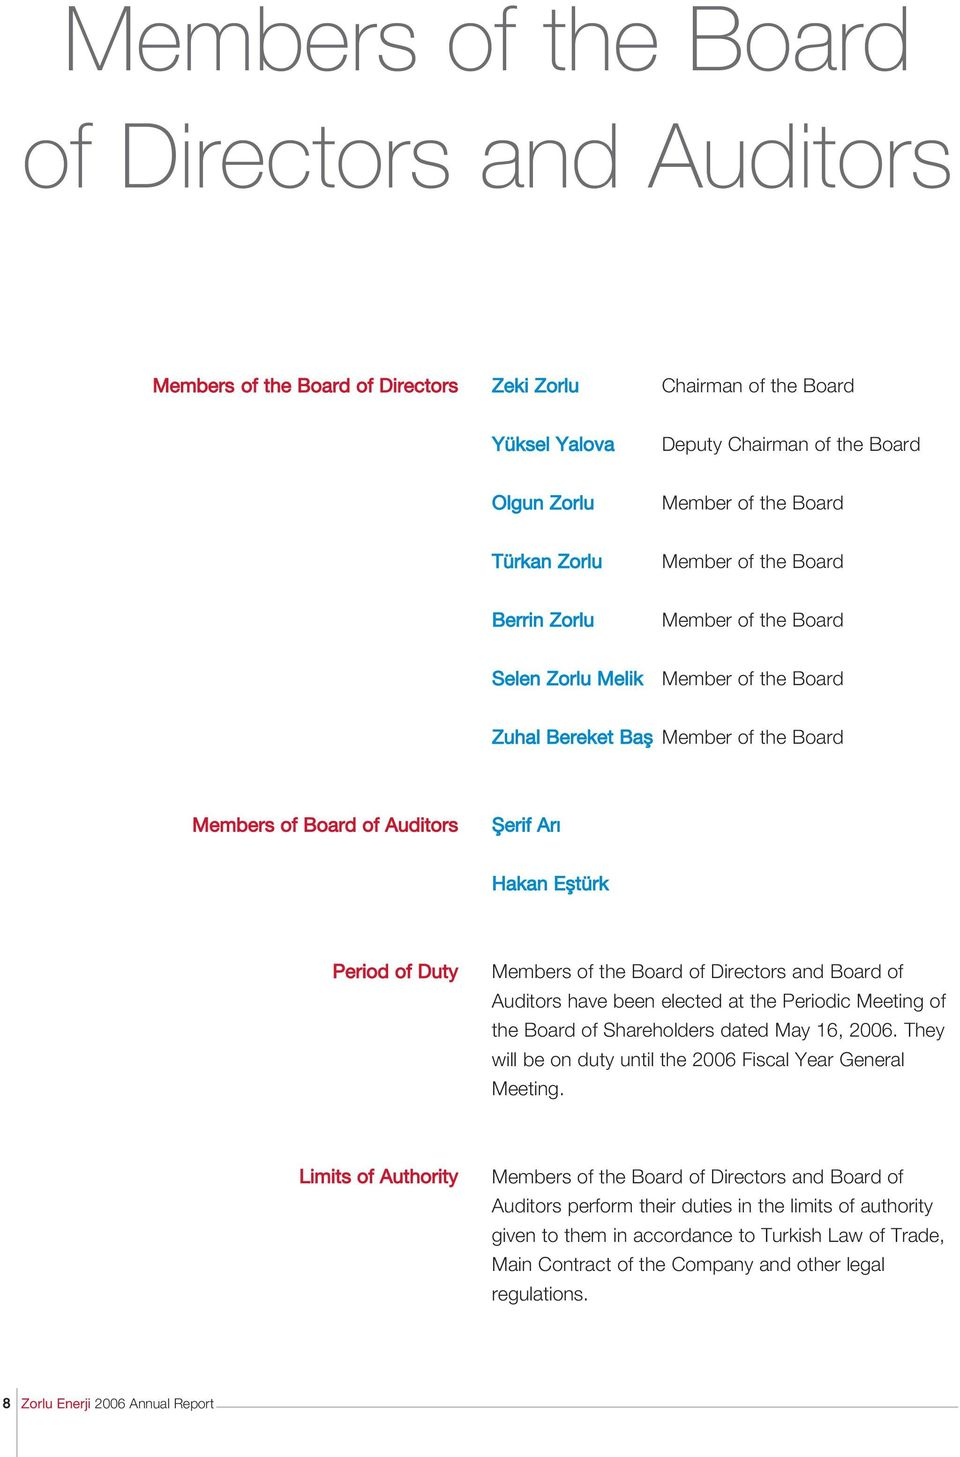 Duty Members of the Board of Directors and Board of Auditors have been elected at the Periodic Meeting of the Board of Shareholders dated May 16, 2006.